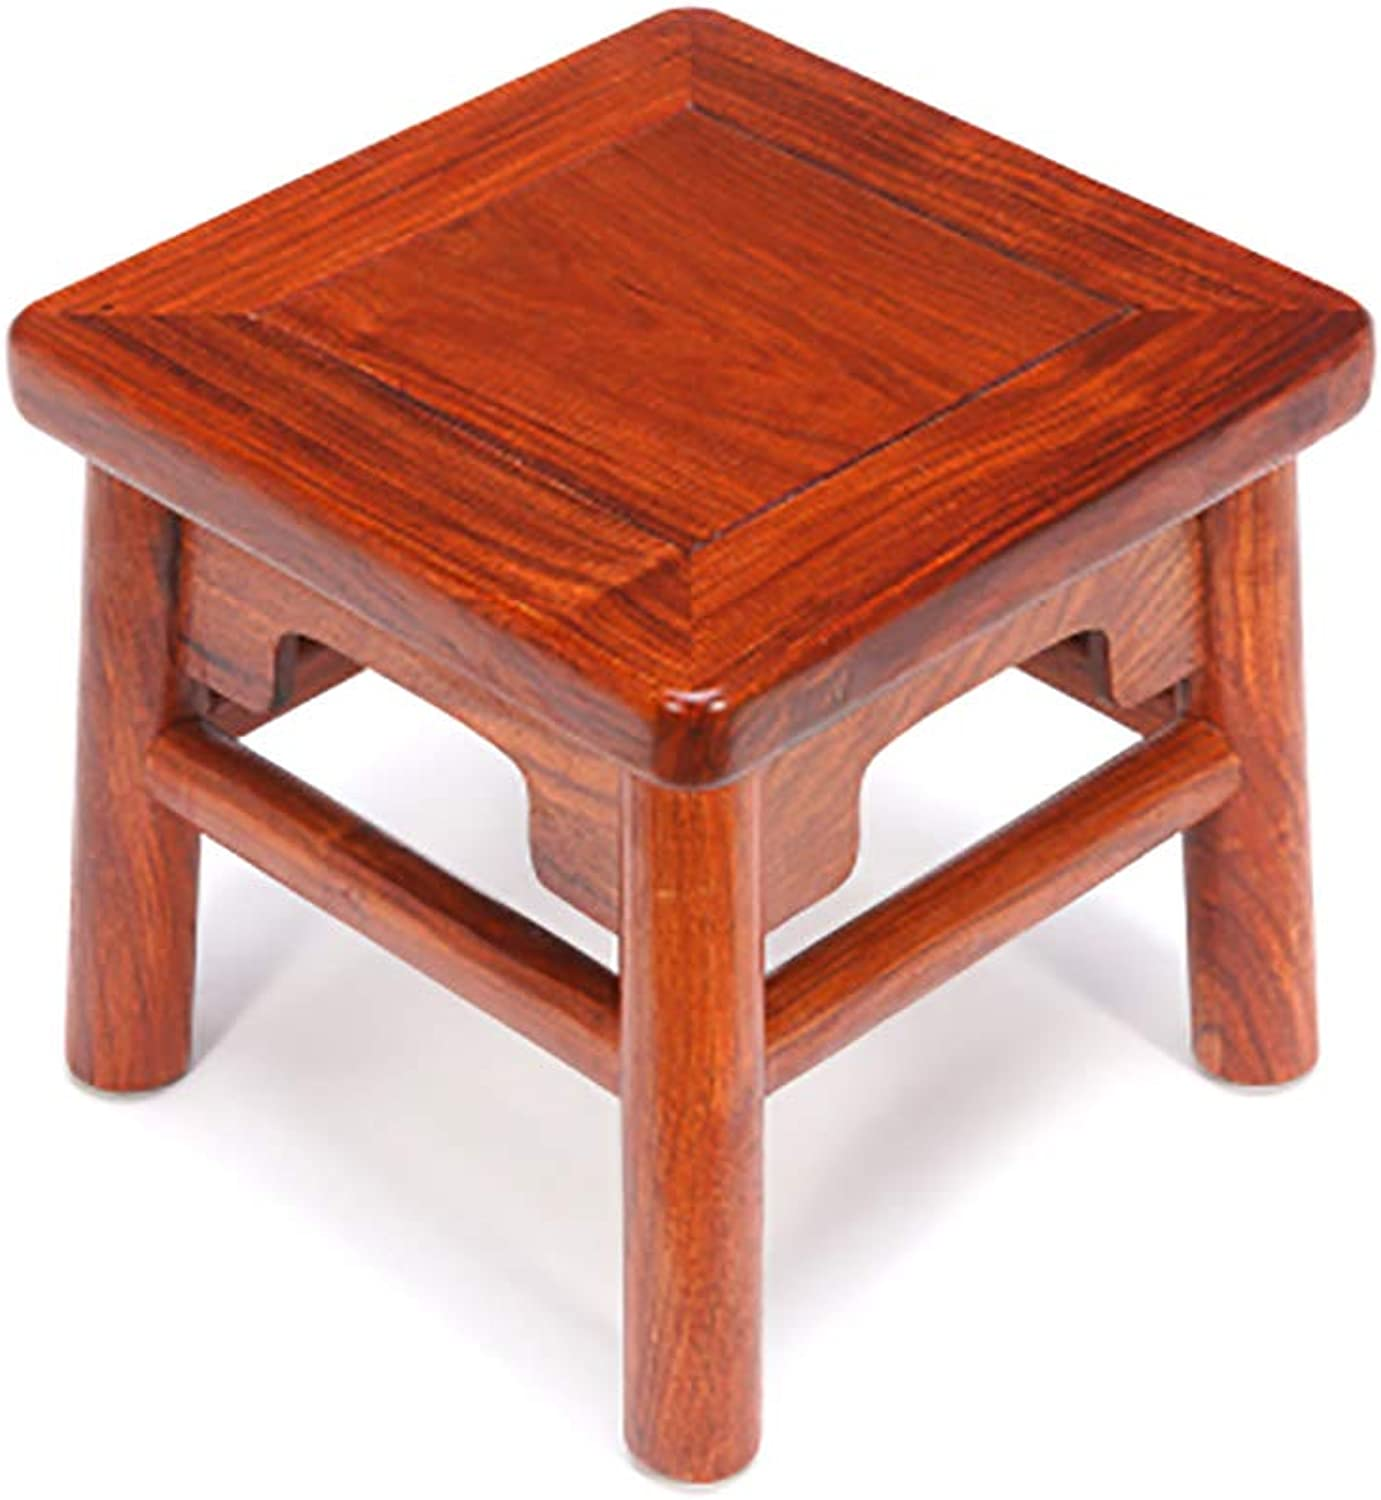 Stool Wooden stool Change shoe bench Coffee table stool Solid wood Square Household (redwood) (Size   28  28  26cm)